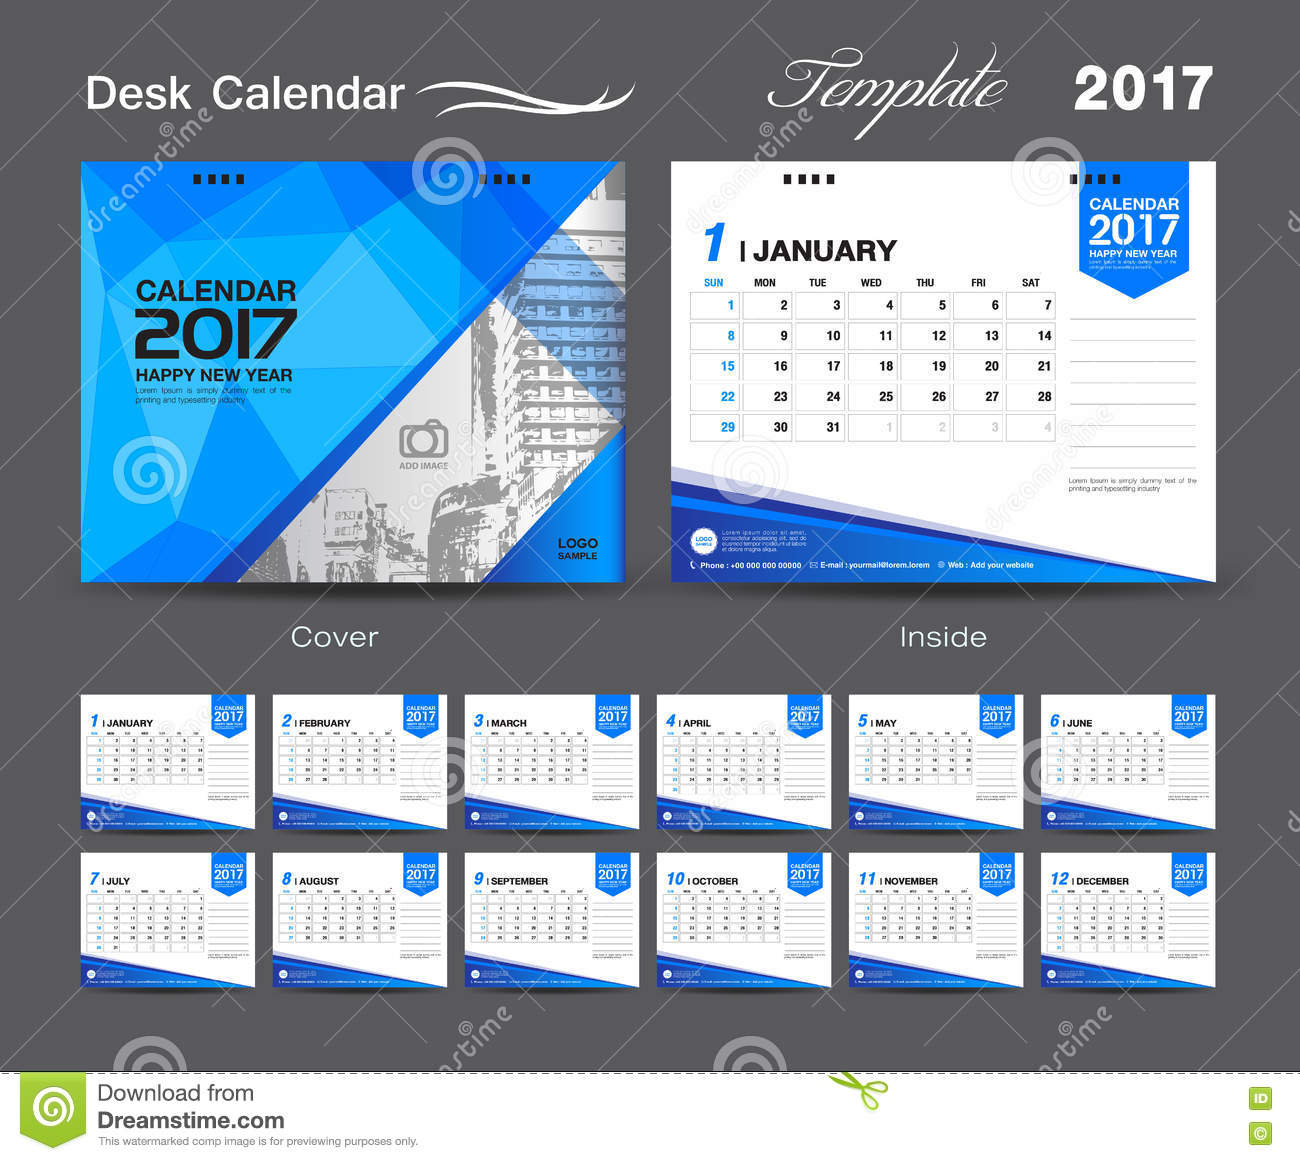 Cover Calendar Design Vector : Set desk calendar template design cover